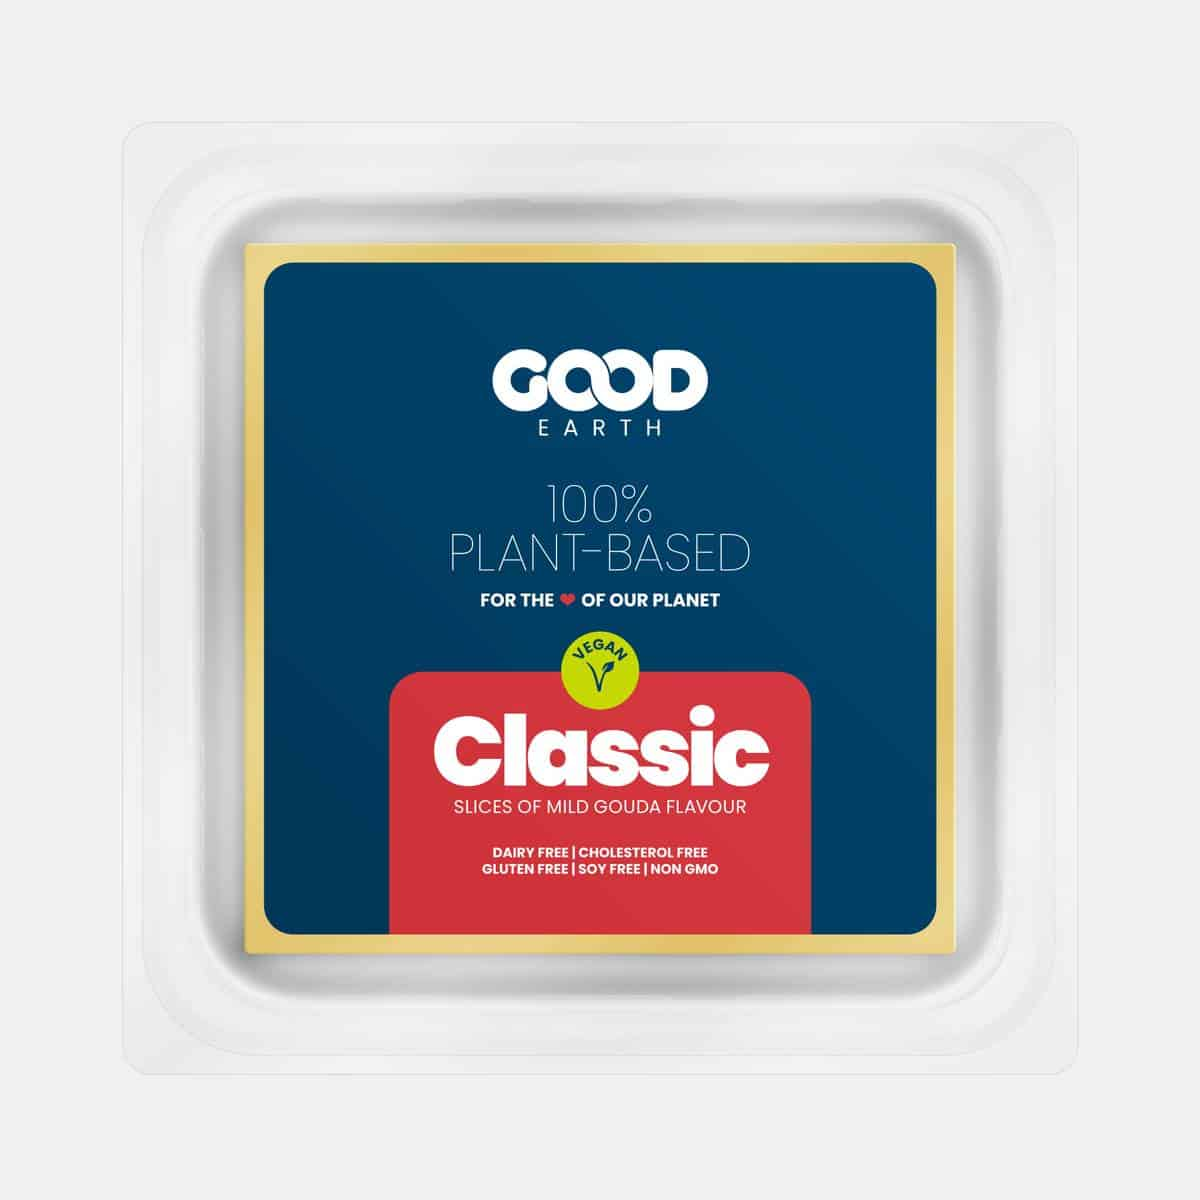 Good Earth Plant Based Classic Cheese 200g